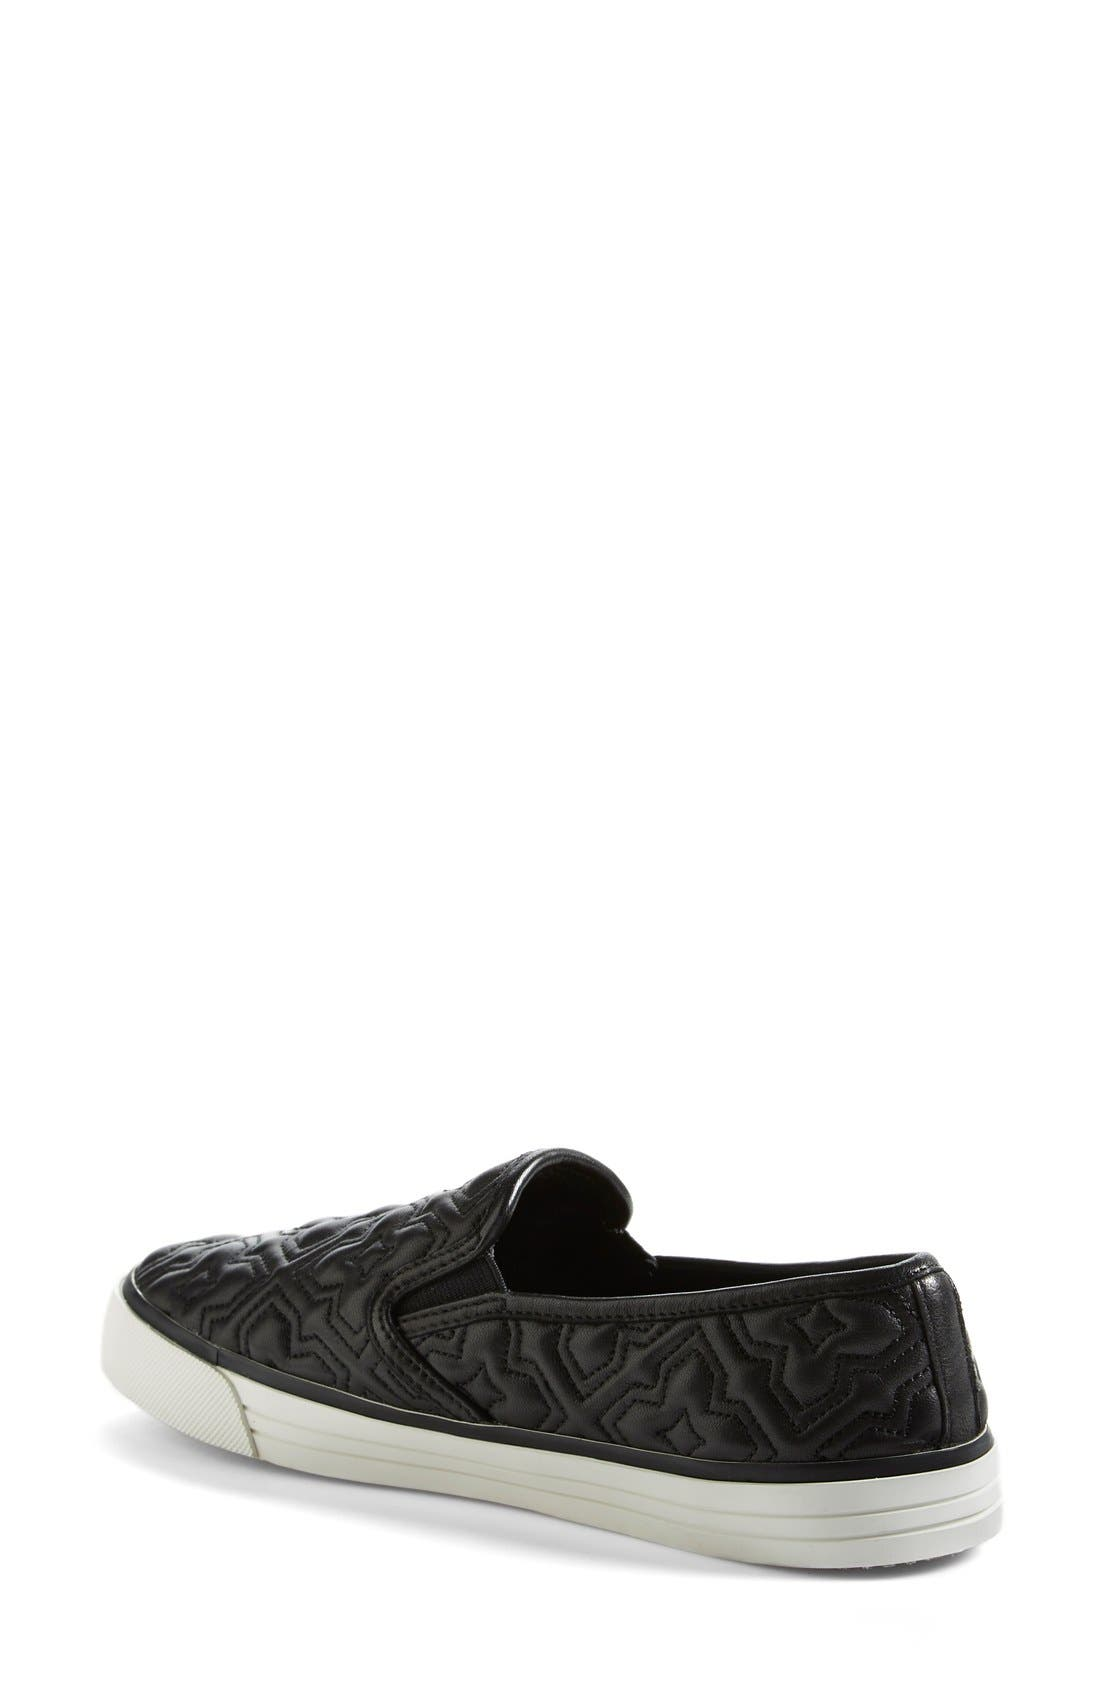 Alternate Image 2  - Tory Burch 'Jesse 2' Quilted Sneaker (Women)